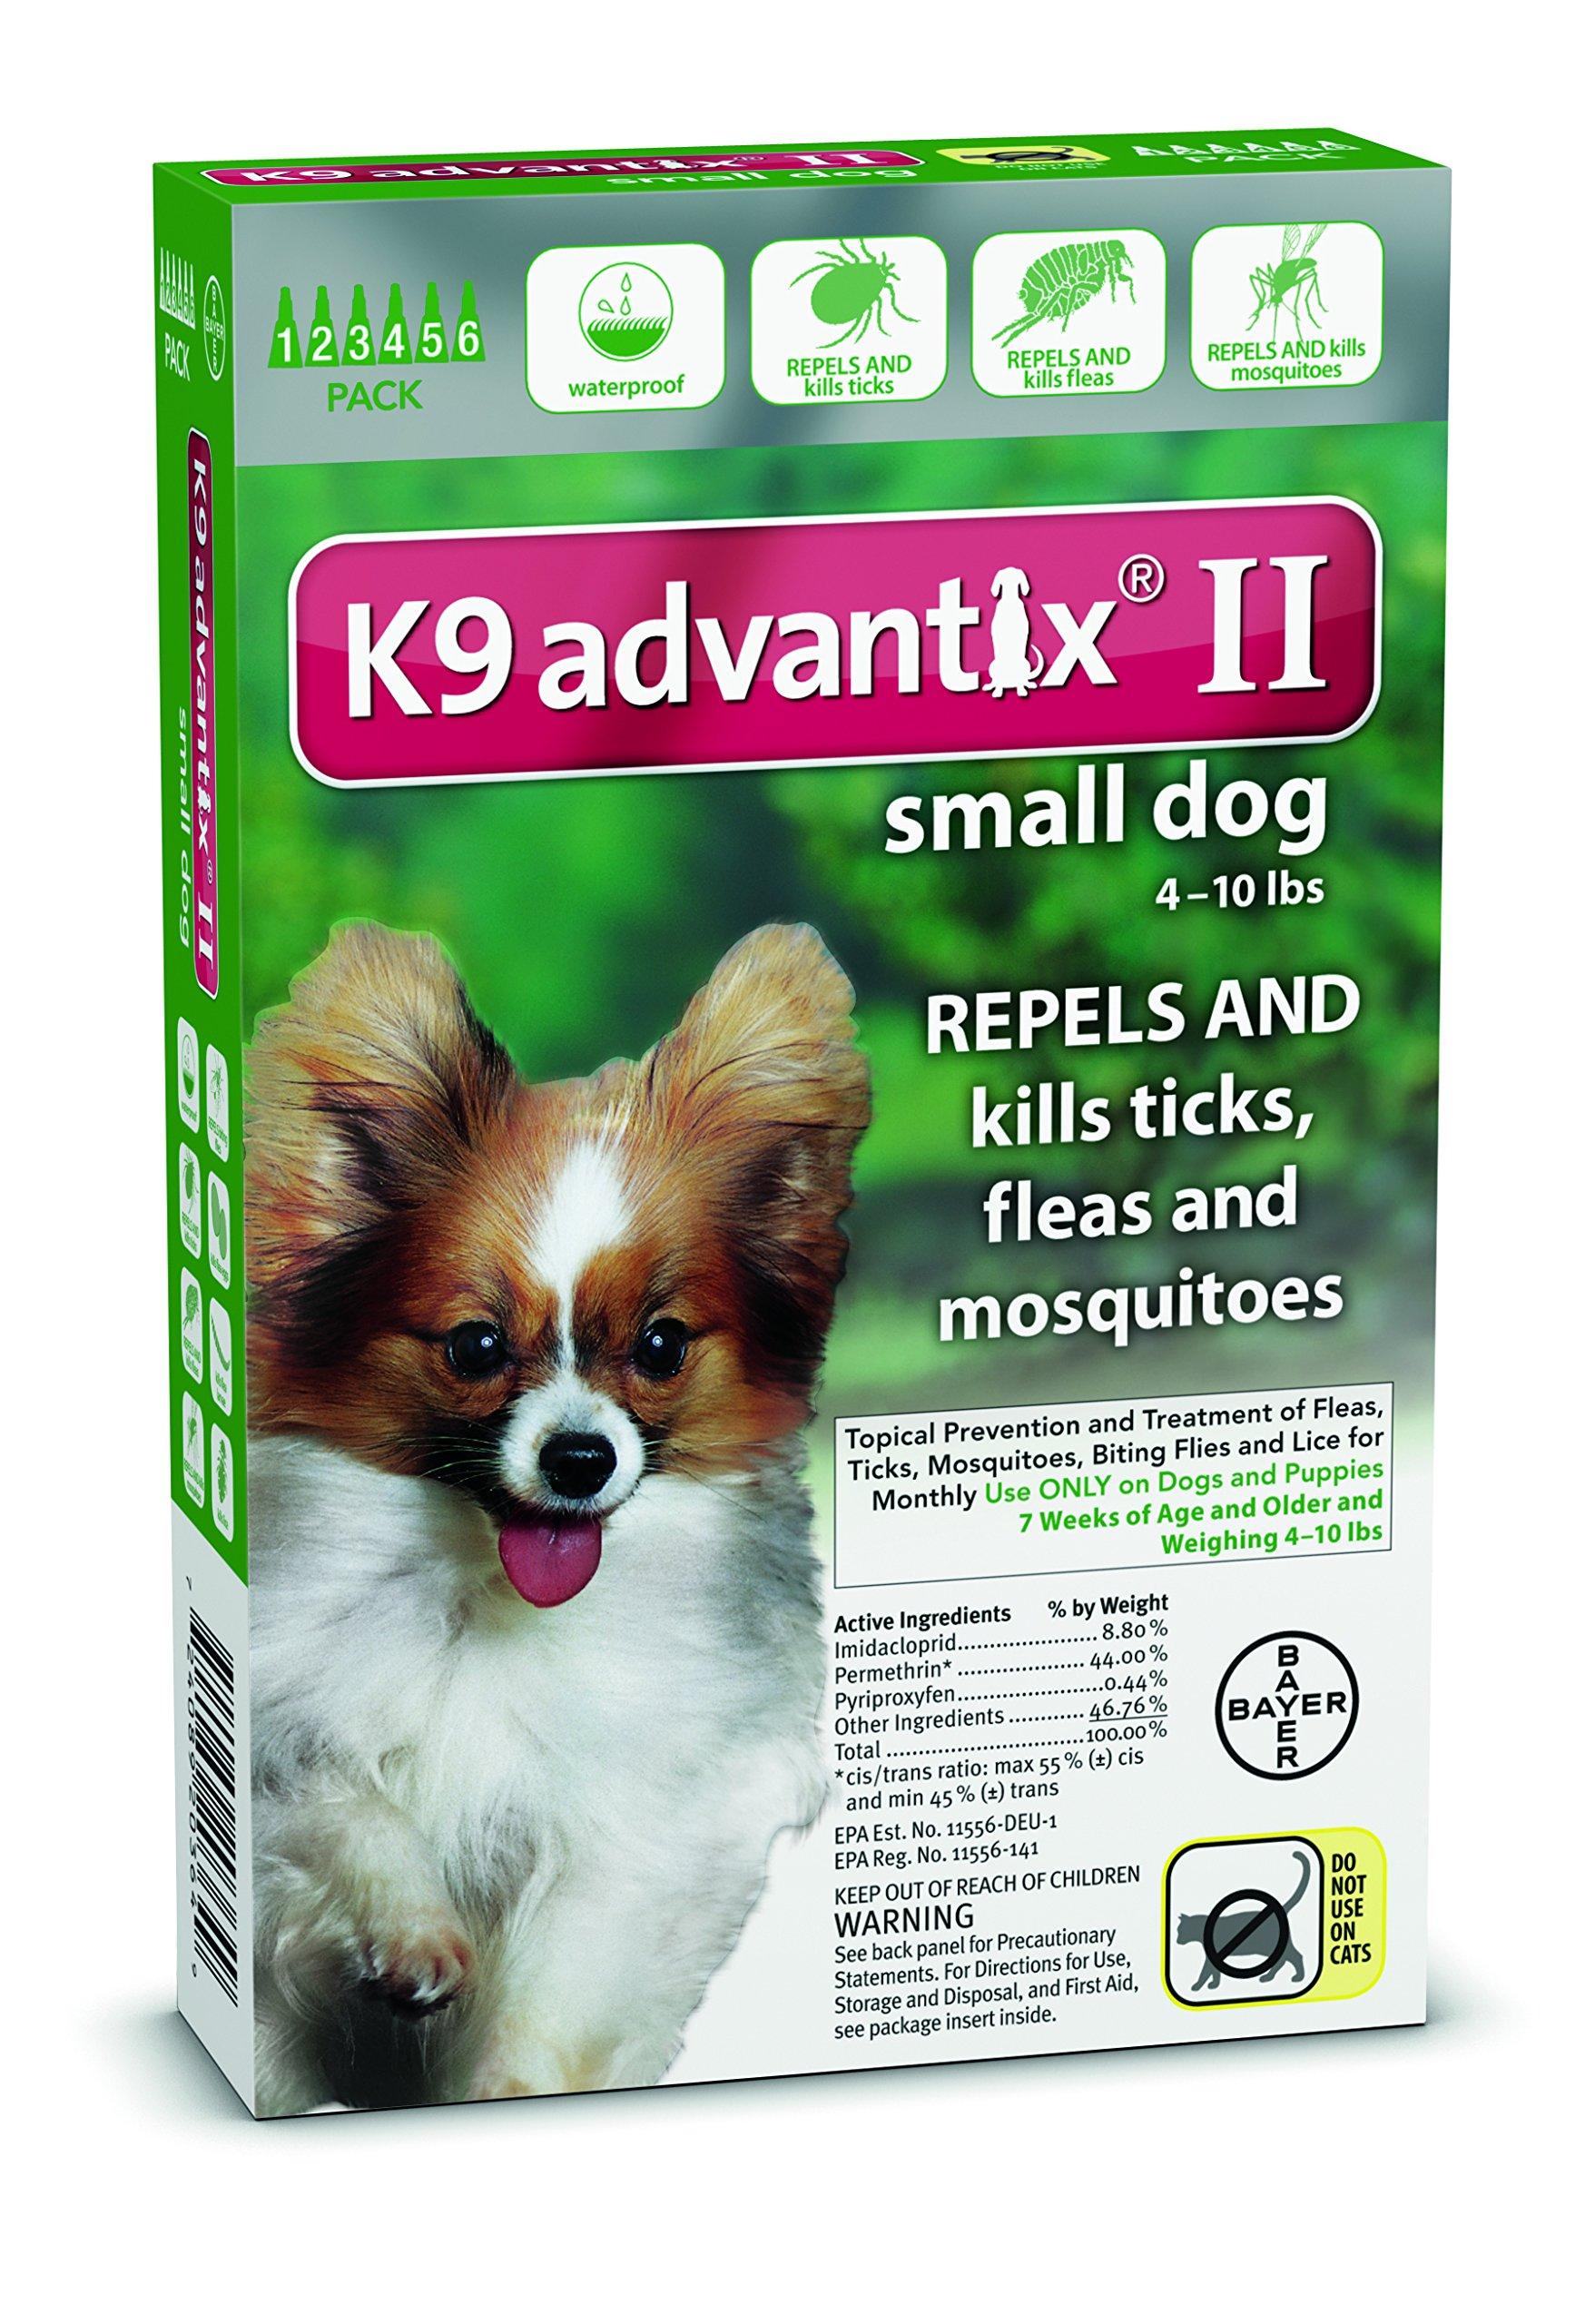 K9 Advantix Flea & Tick Medication for Dogs Supply: 6 Months, Pet Weight: Under 10 lbs